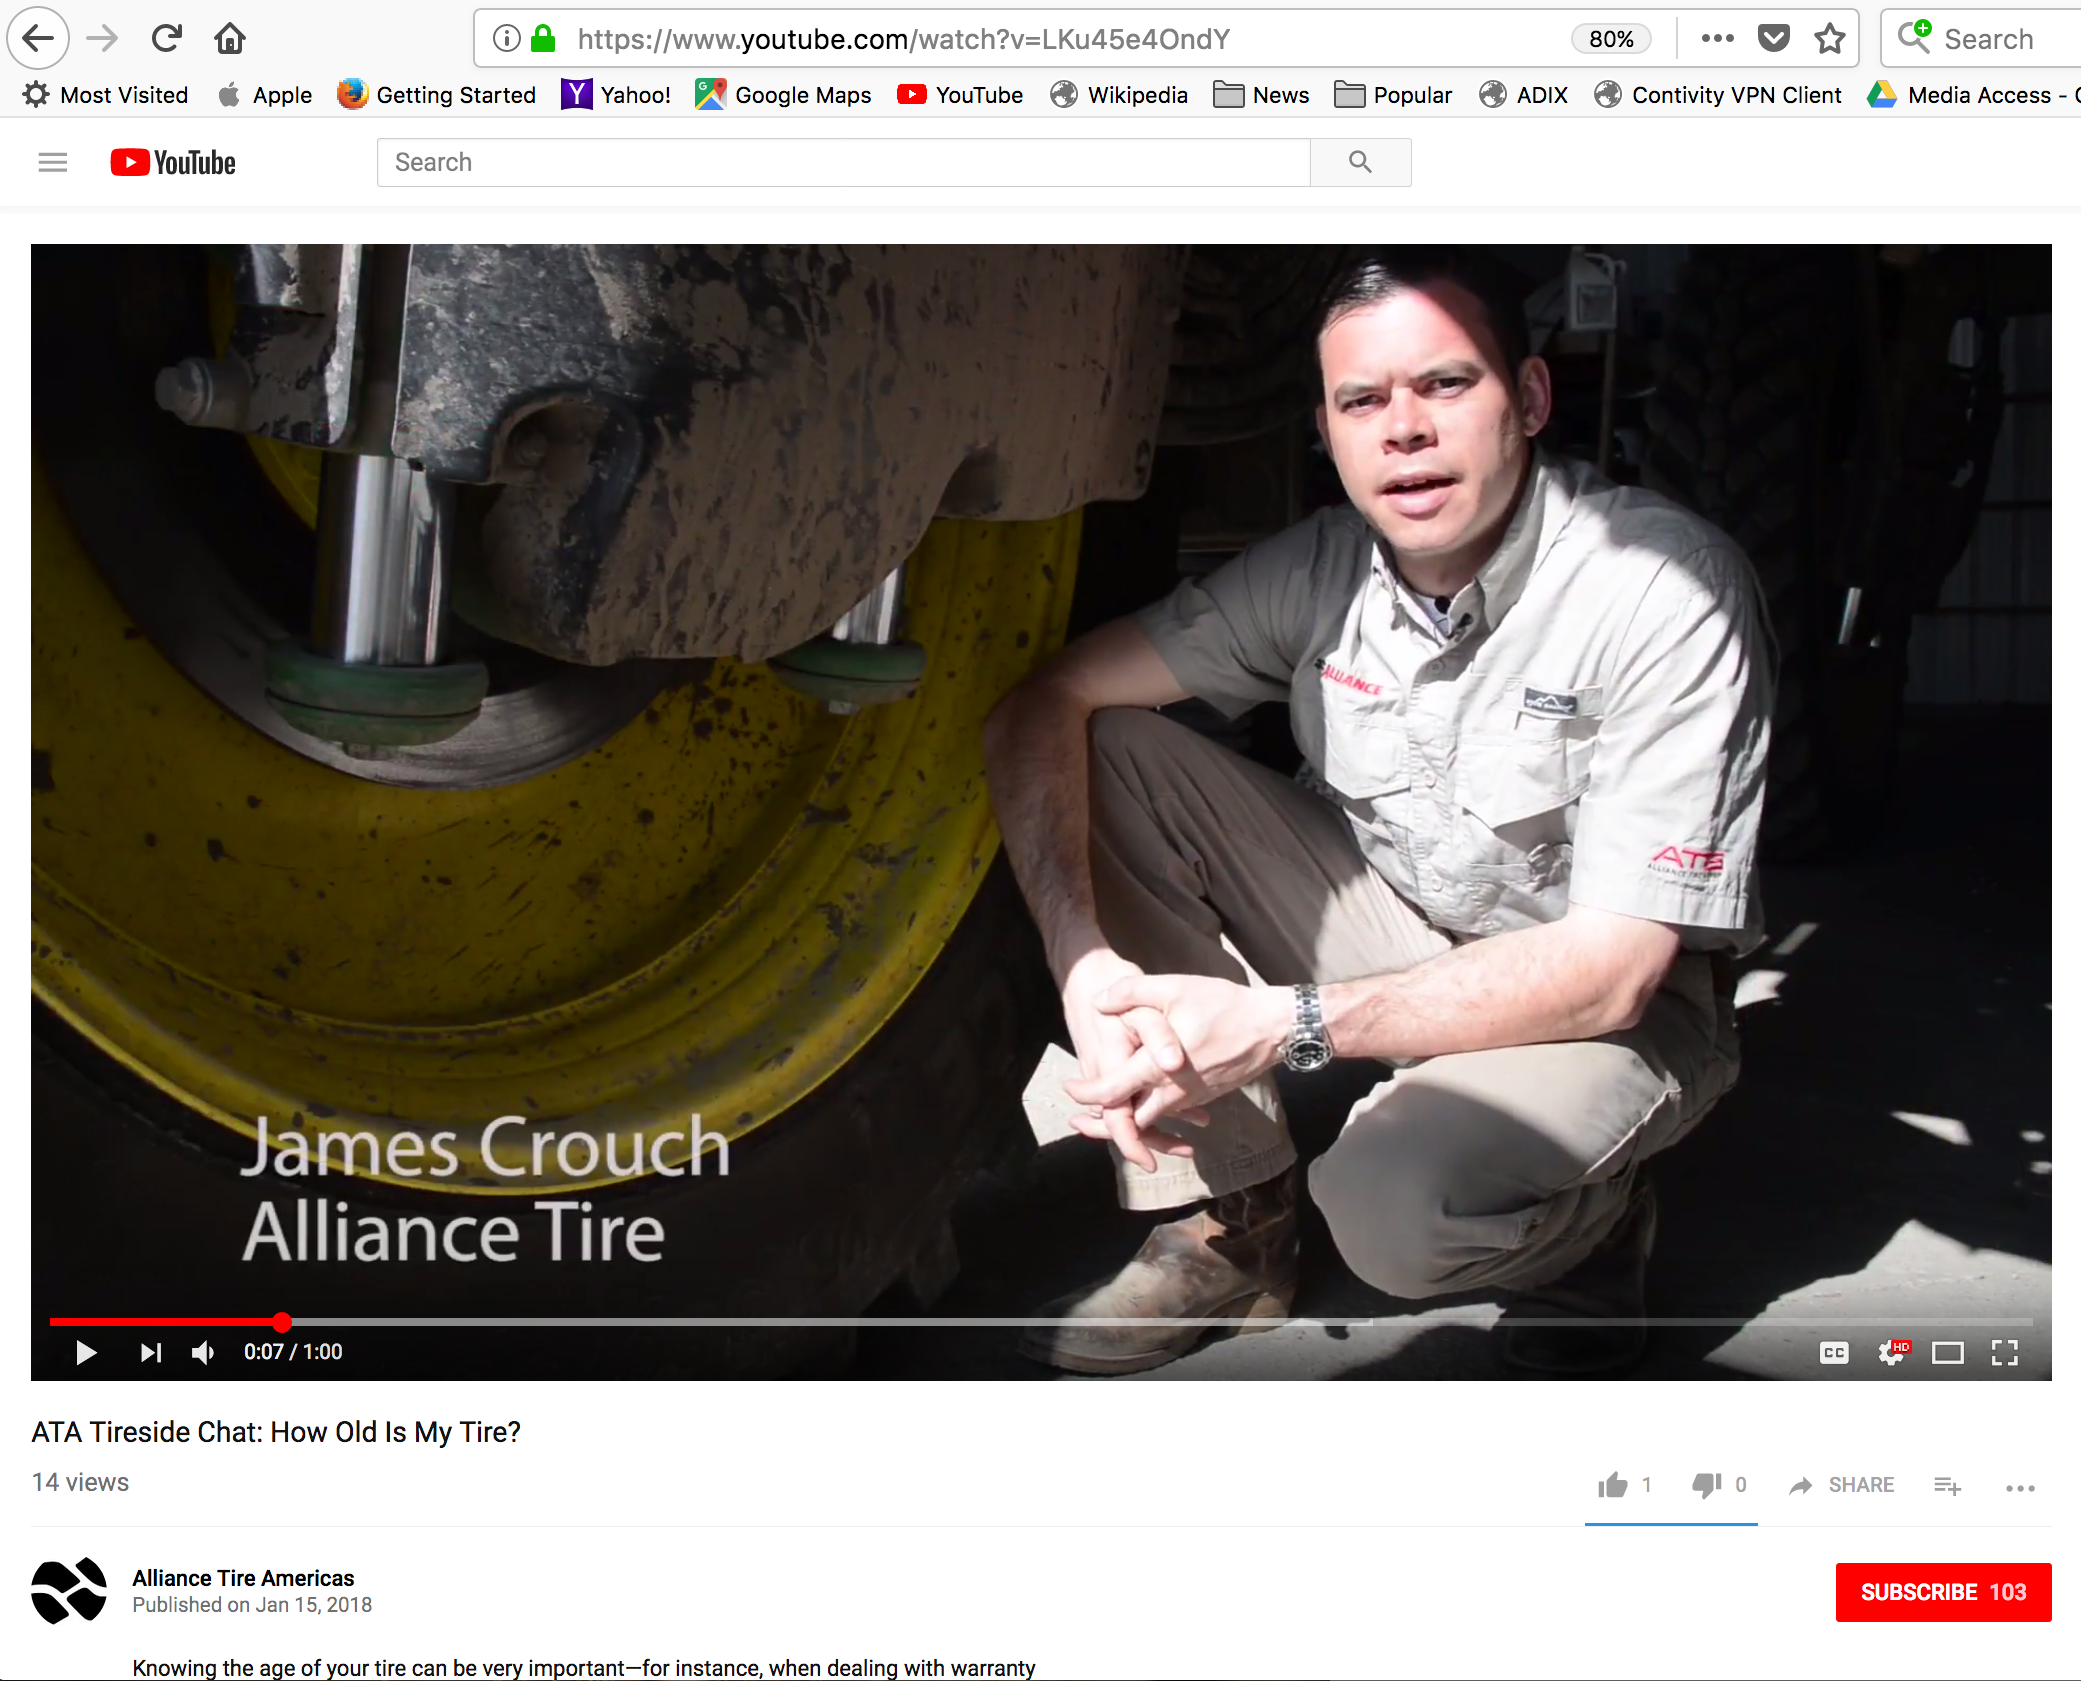 Alliance Tire Tireside Chat Screen Grab.png